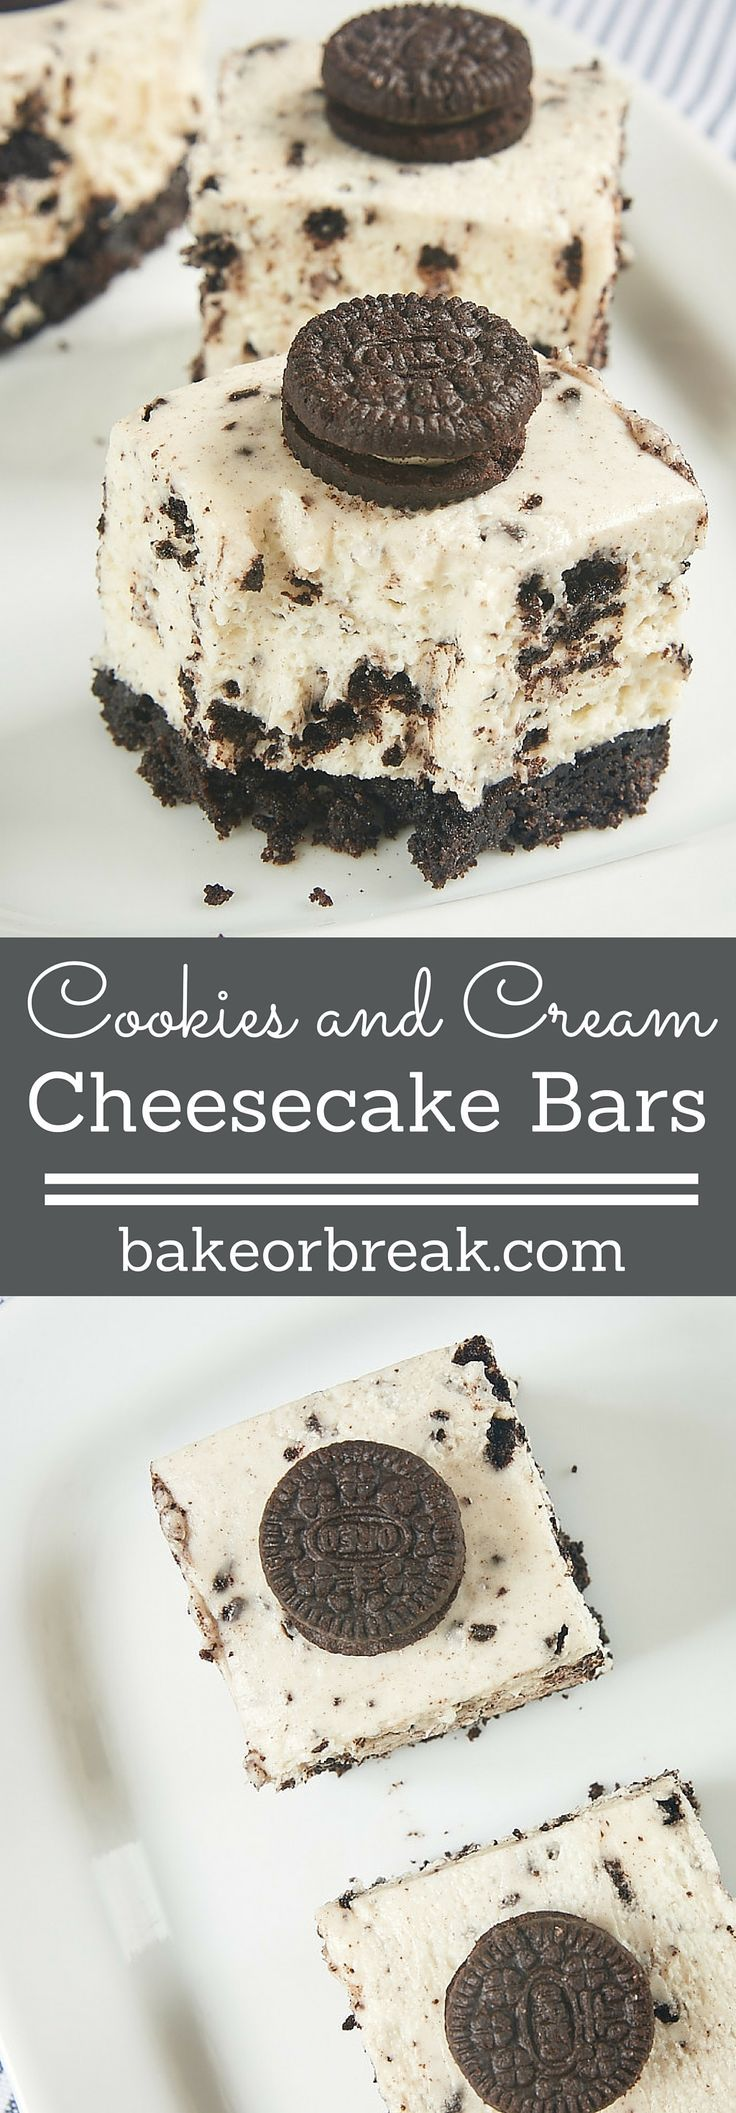 Oreo lovers will be in dessert heaven with these Cookies and Cream Cheesecake Bars. A cookie crust, a simple no-bake cheesecake, and lots of Oreos make these a sure crowd-pleaser! - Bake or Break